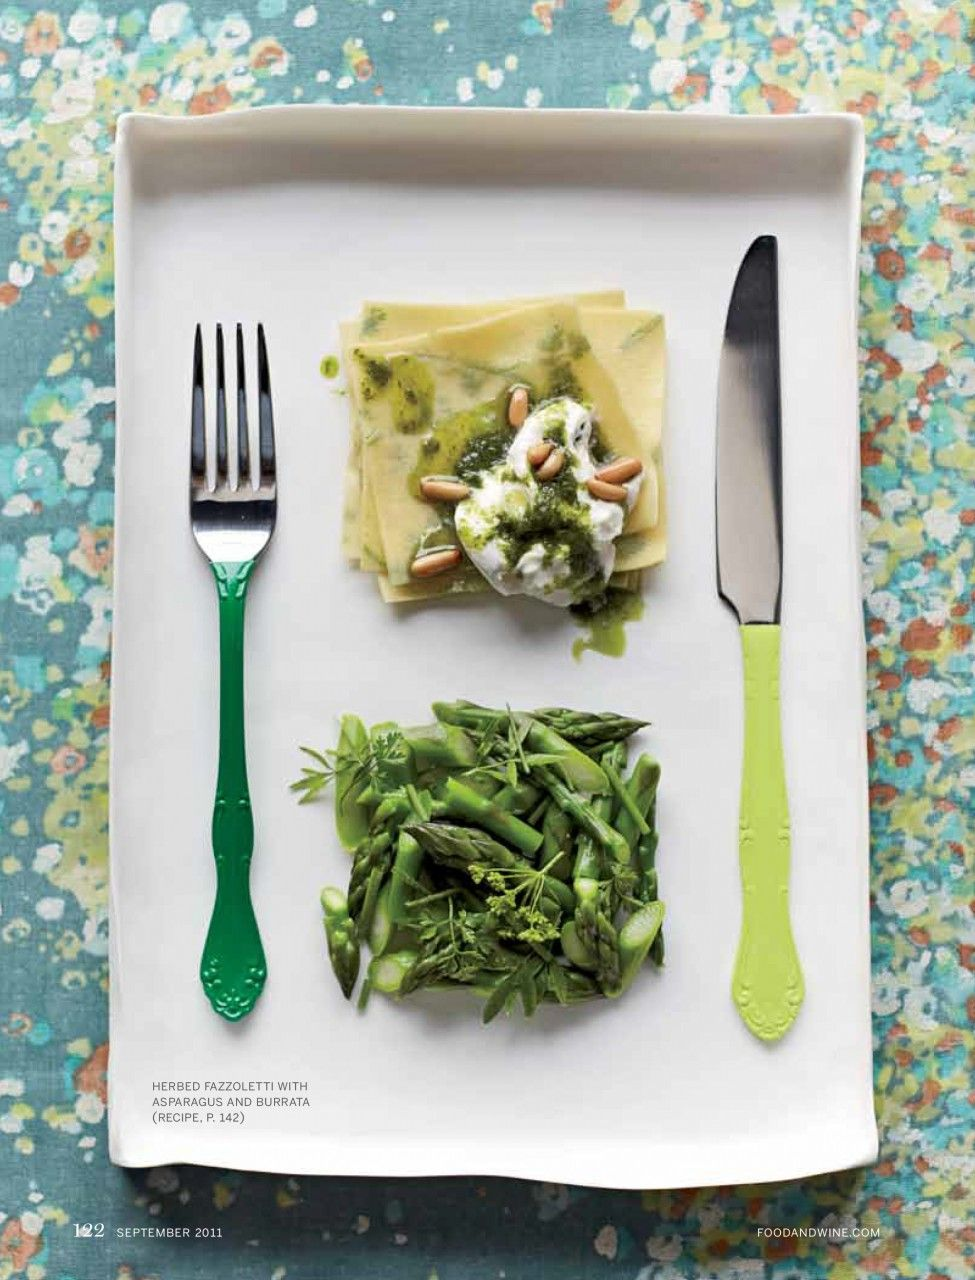 Vegetables alison attenborough yum pinterest art director herbed fazzoletti w asparagus this beautiful dish works wonderfully with a cold glass of white wine forumfinder Choice Image